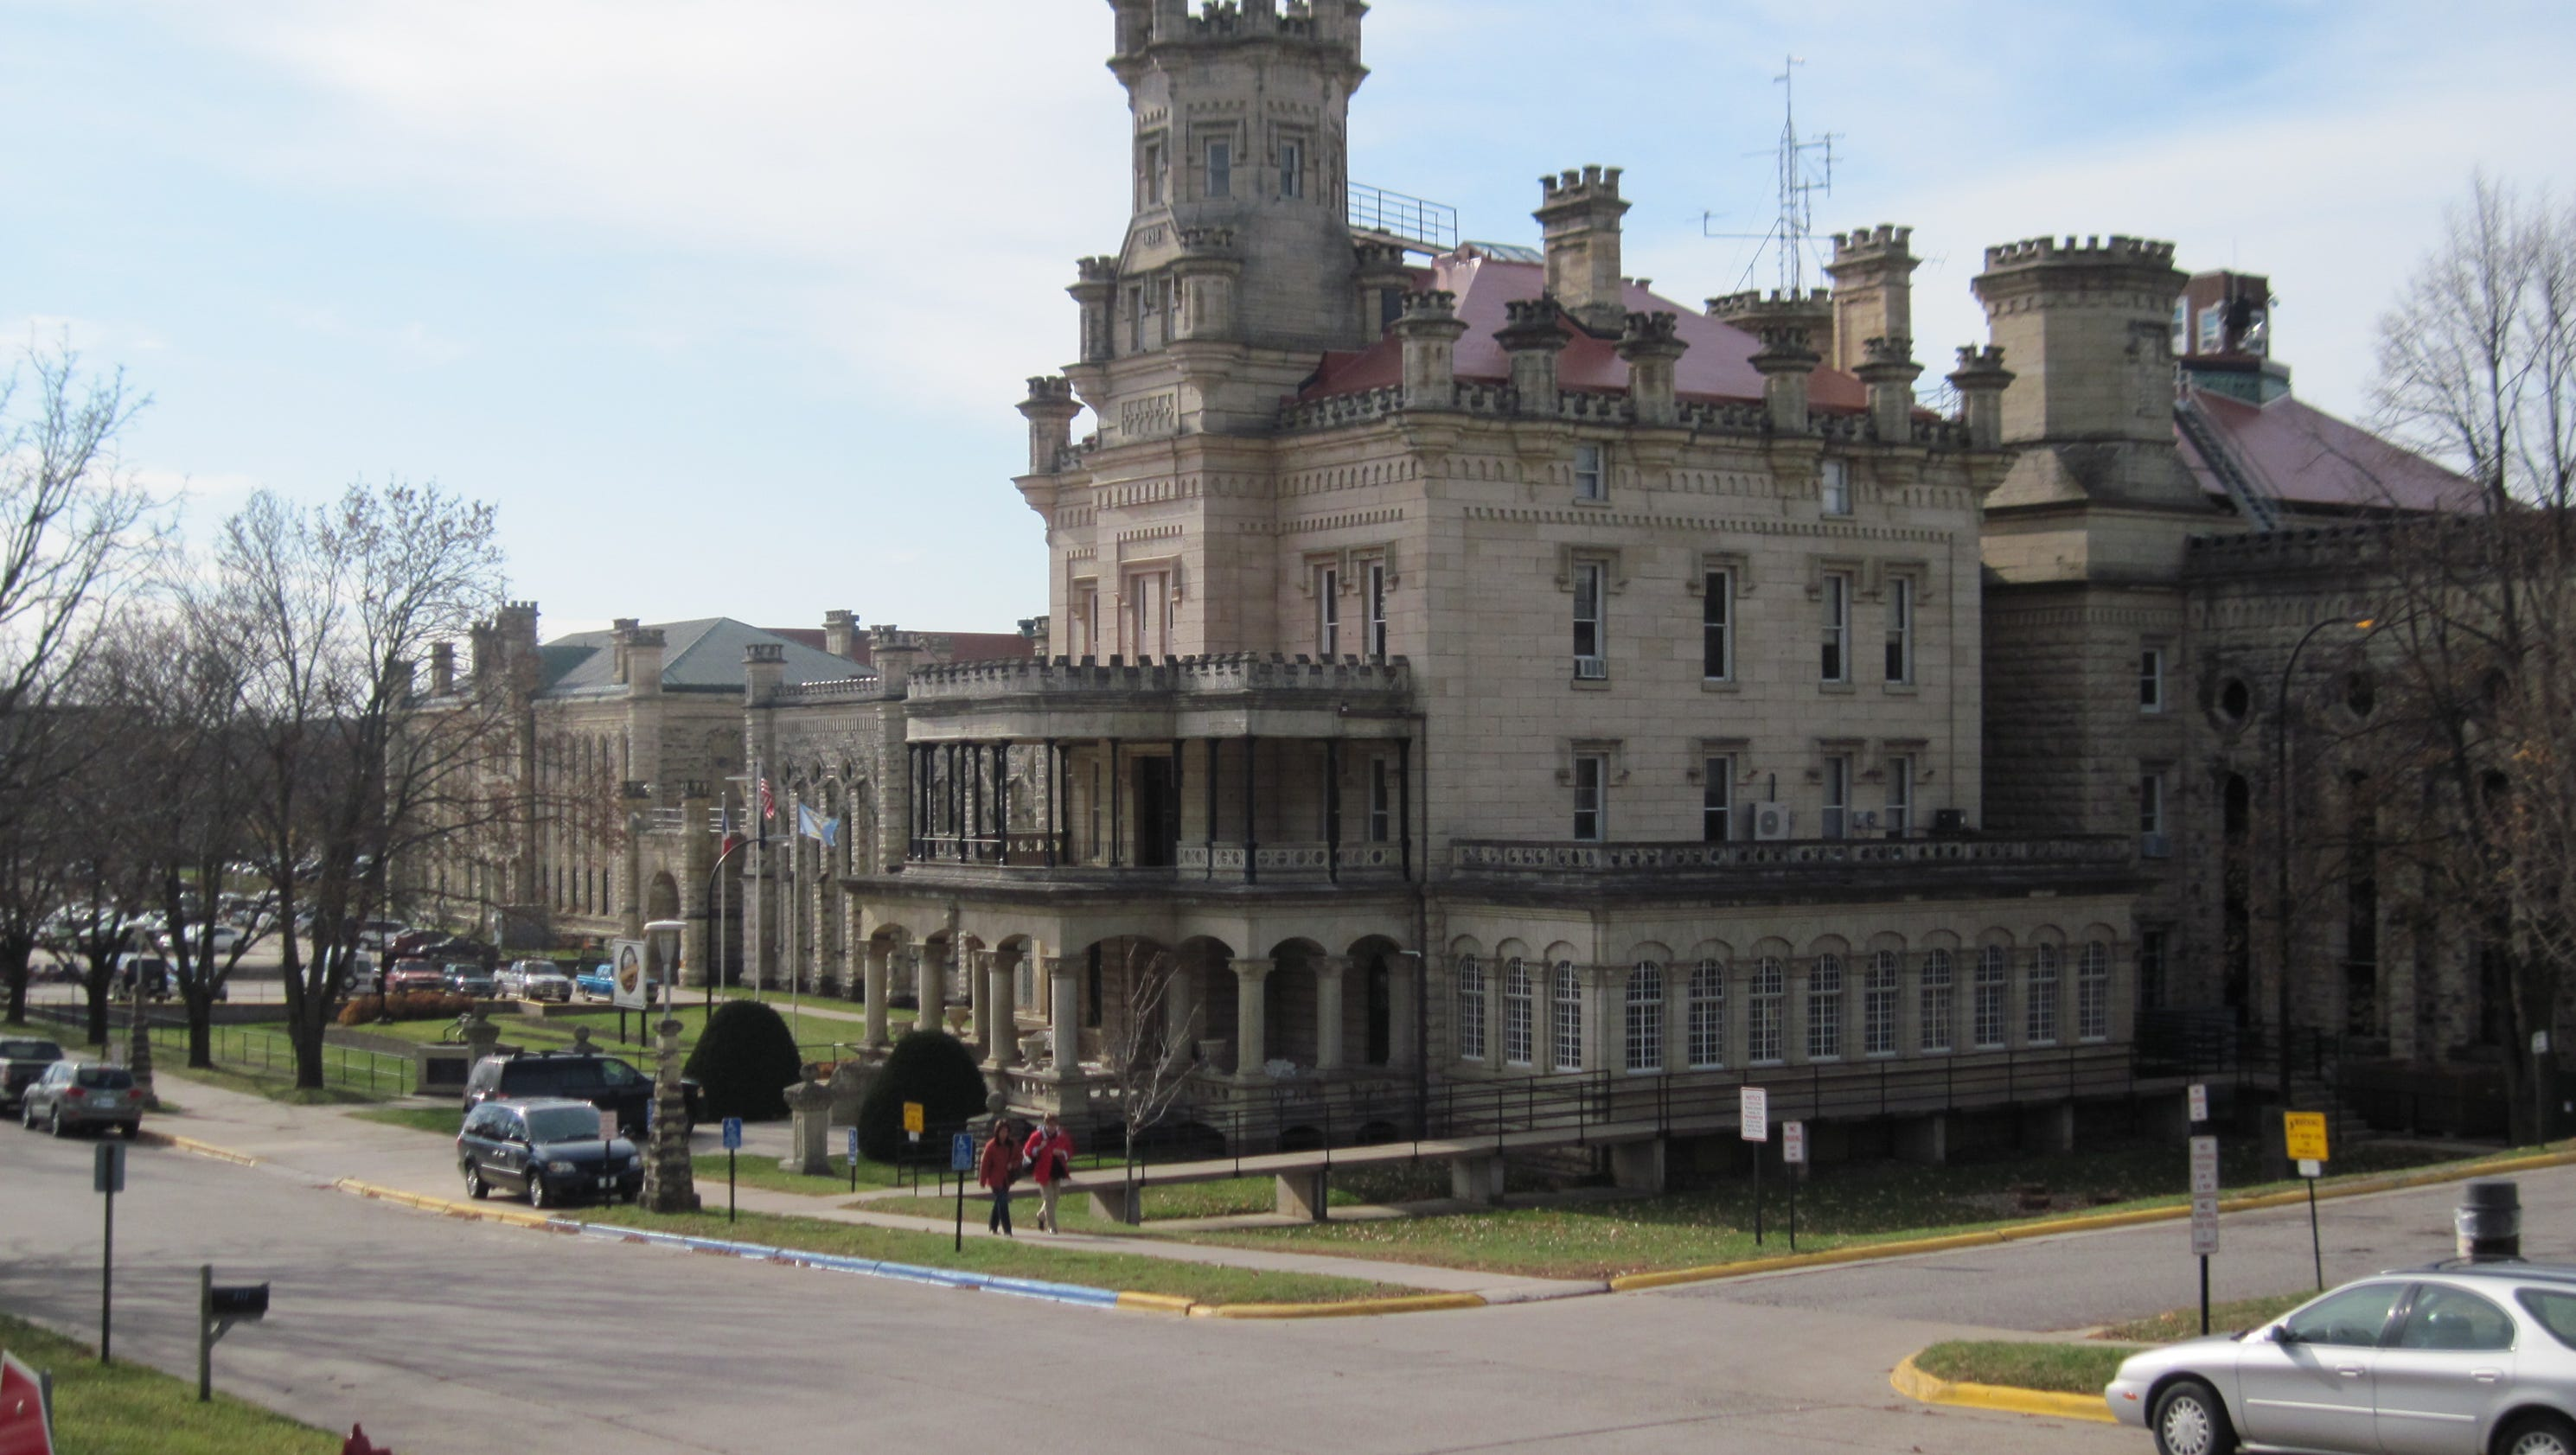 anamosa chat According to our research of iowa and other state lists there were 8 registered sex offenders living in anamosa, iowa as of may 14, 2018 the ratio of number of residents in anamosa to the number of sex offenders is 689 to 1 the number of registered sex offenders compared to the number of residents.